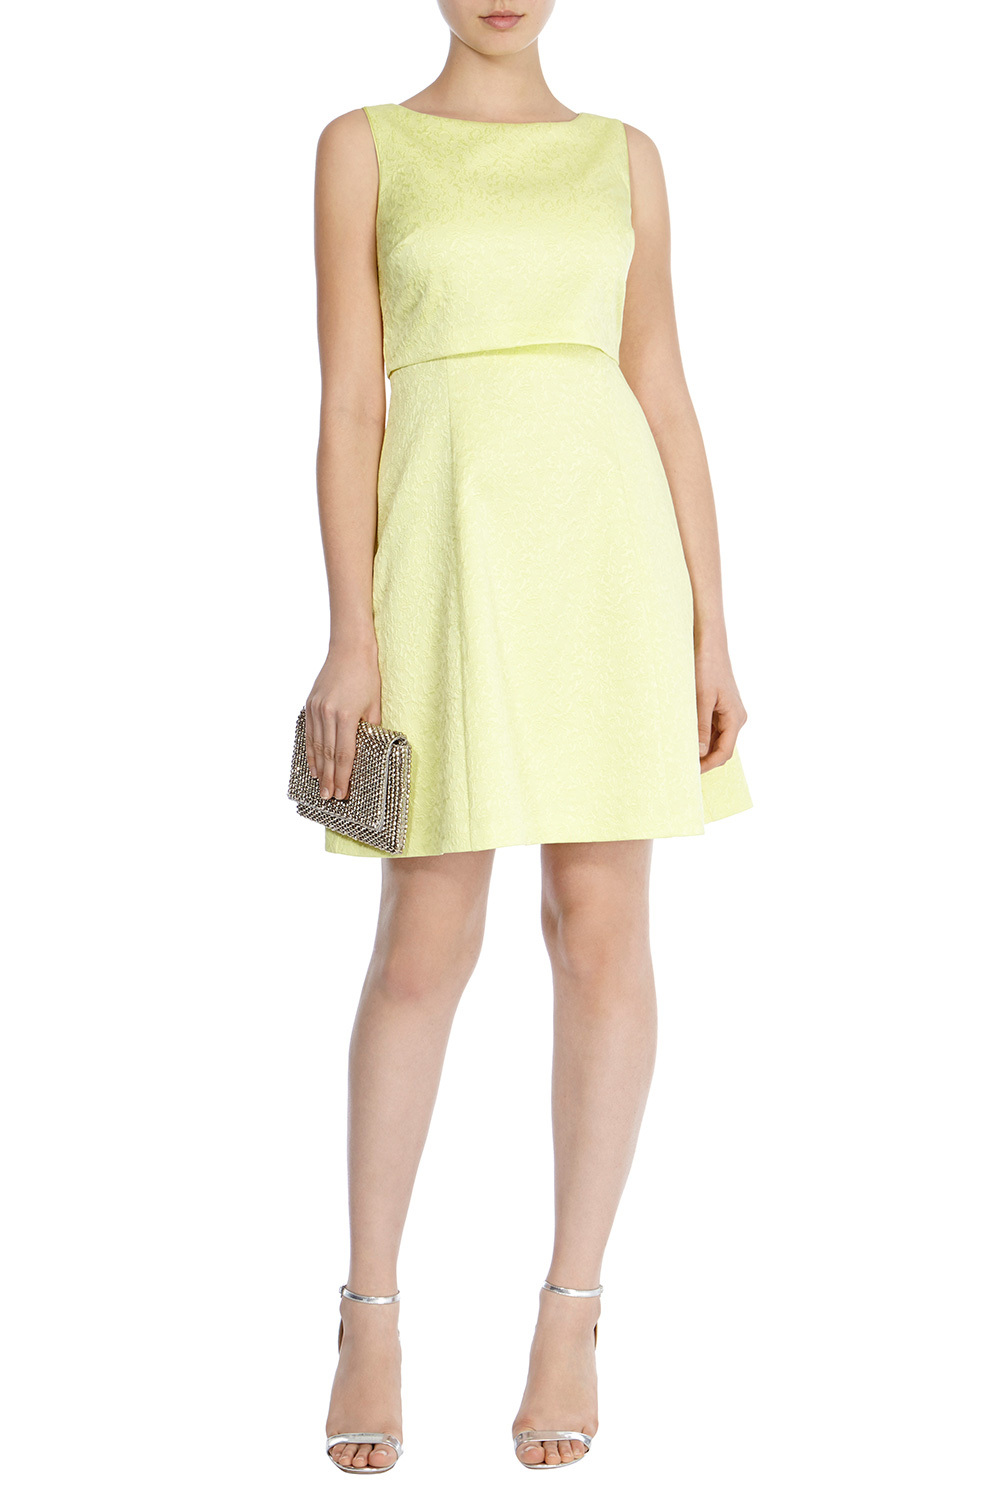 Betsie Lou Jacquard Dress - fit: fitted at waist; pattern: plain; sleeve style: sleeveless; predominant colour: primrose yellow; length: just above the knee; style: fit & flare; fibres: polyester/polyamide - stretch; occasions: occasion; neckline: crew; sleeve length: sleeveless; pattern type: fabric; texture group: brocade/jacquard; season: s/s 2016; wardrobe: event